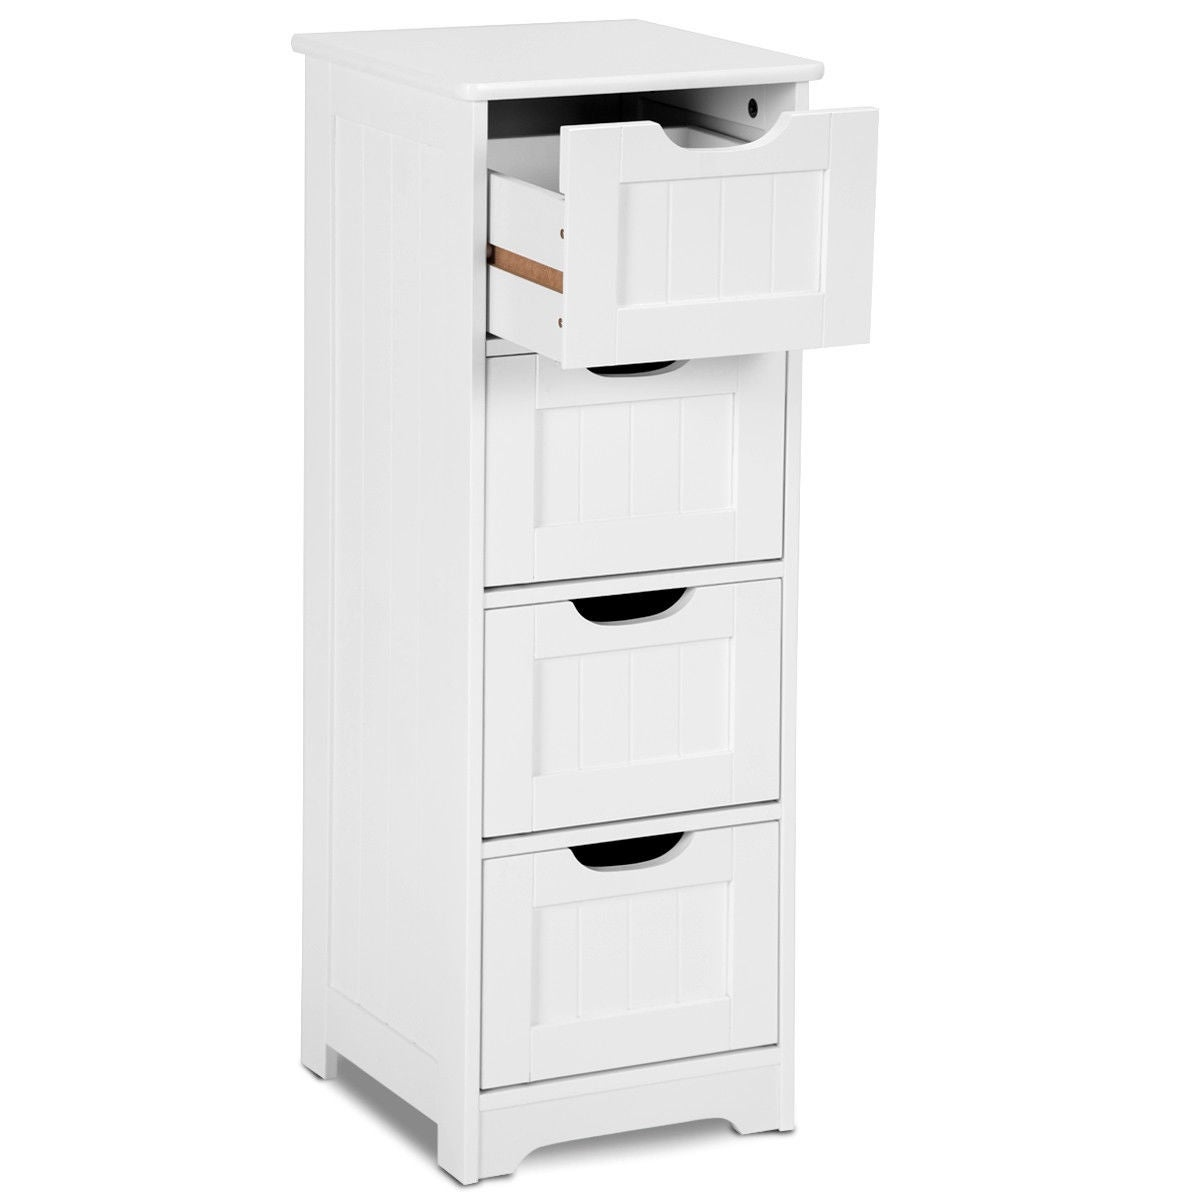 Shop Gymax Bathroom Floor Cabinet Wooden Free Standing Storage Side ...